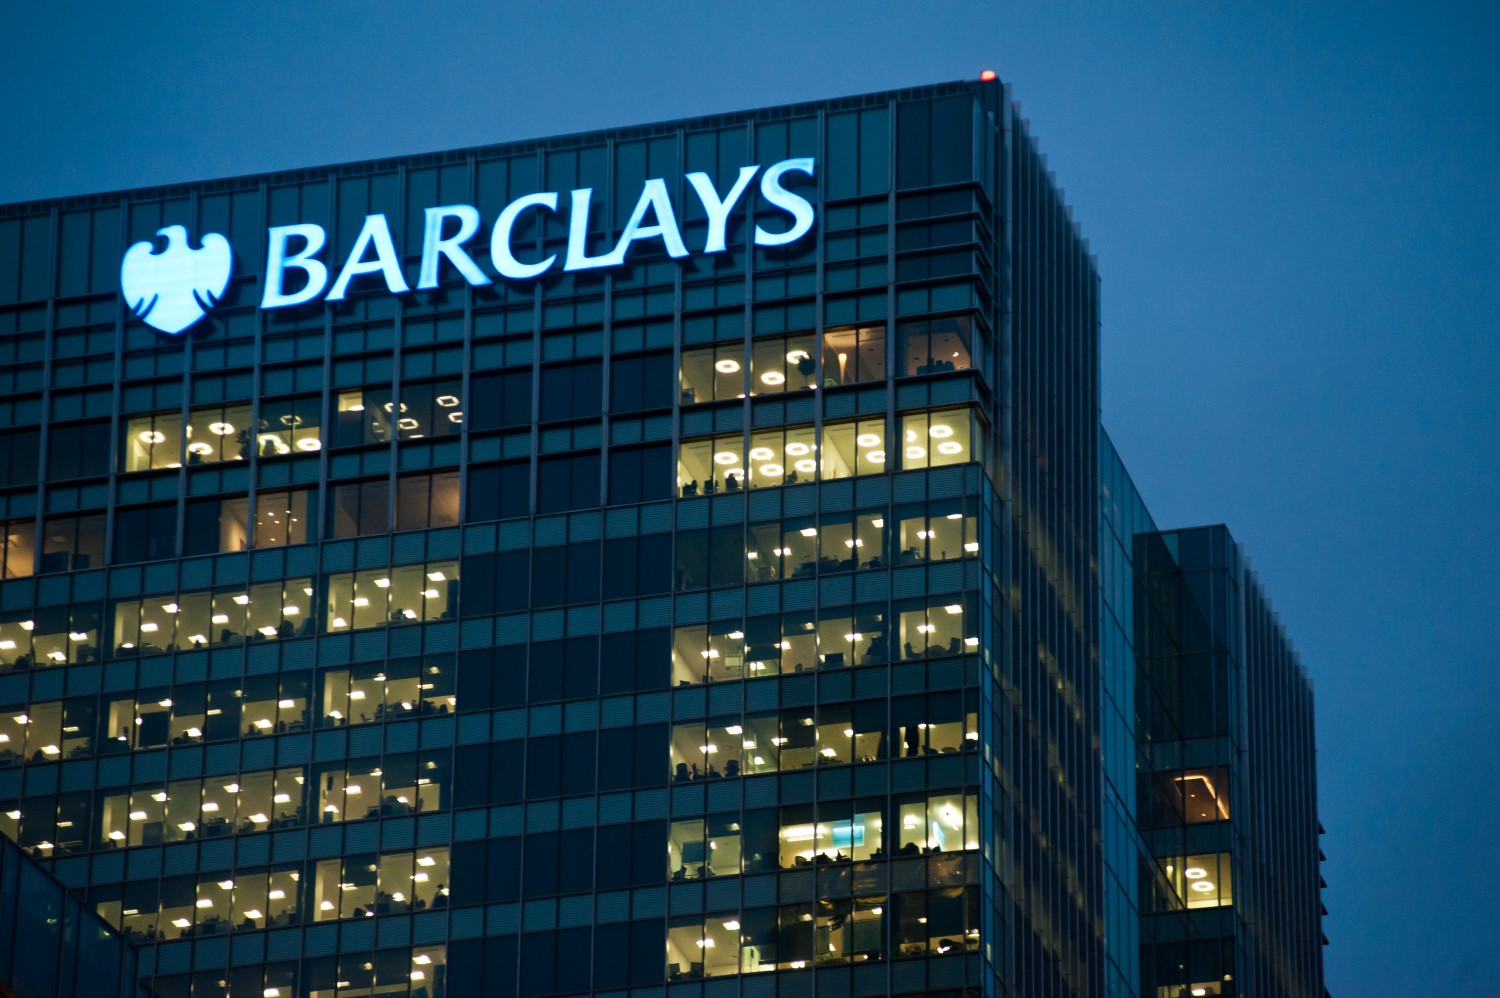 Barclays Block Is Based on 'Inaccurate Understanding,' Binance Says